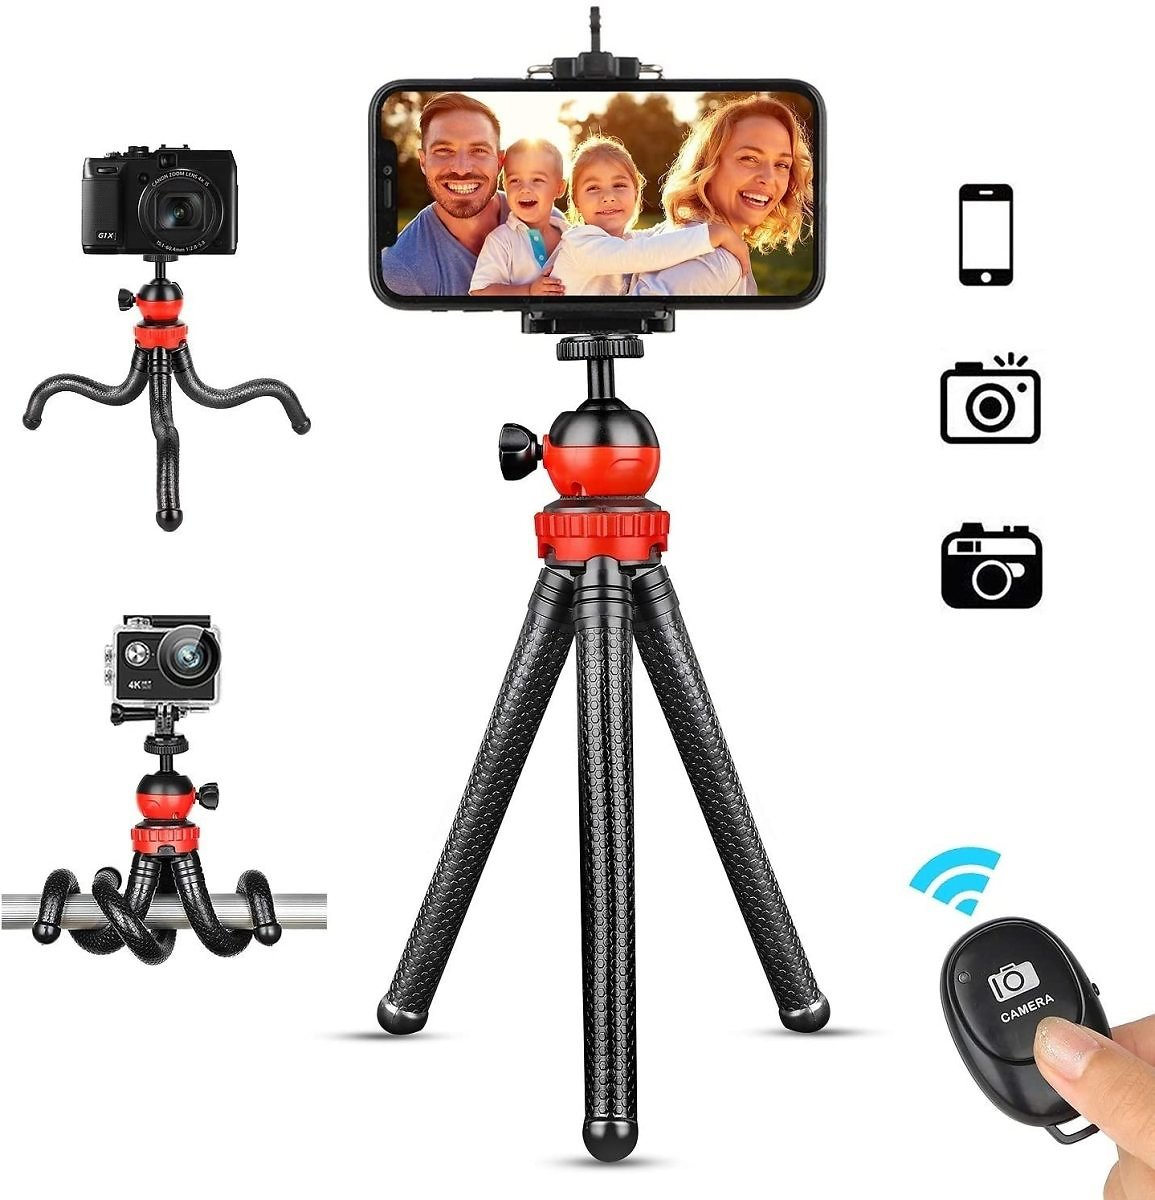 Prime Day Coupon 20% Deals Phone Tripod, Portable Cellphone Camera Tripod Stand with Wireless Remote